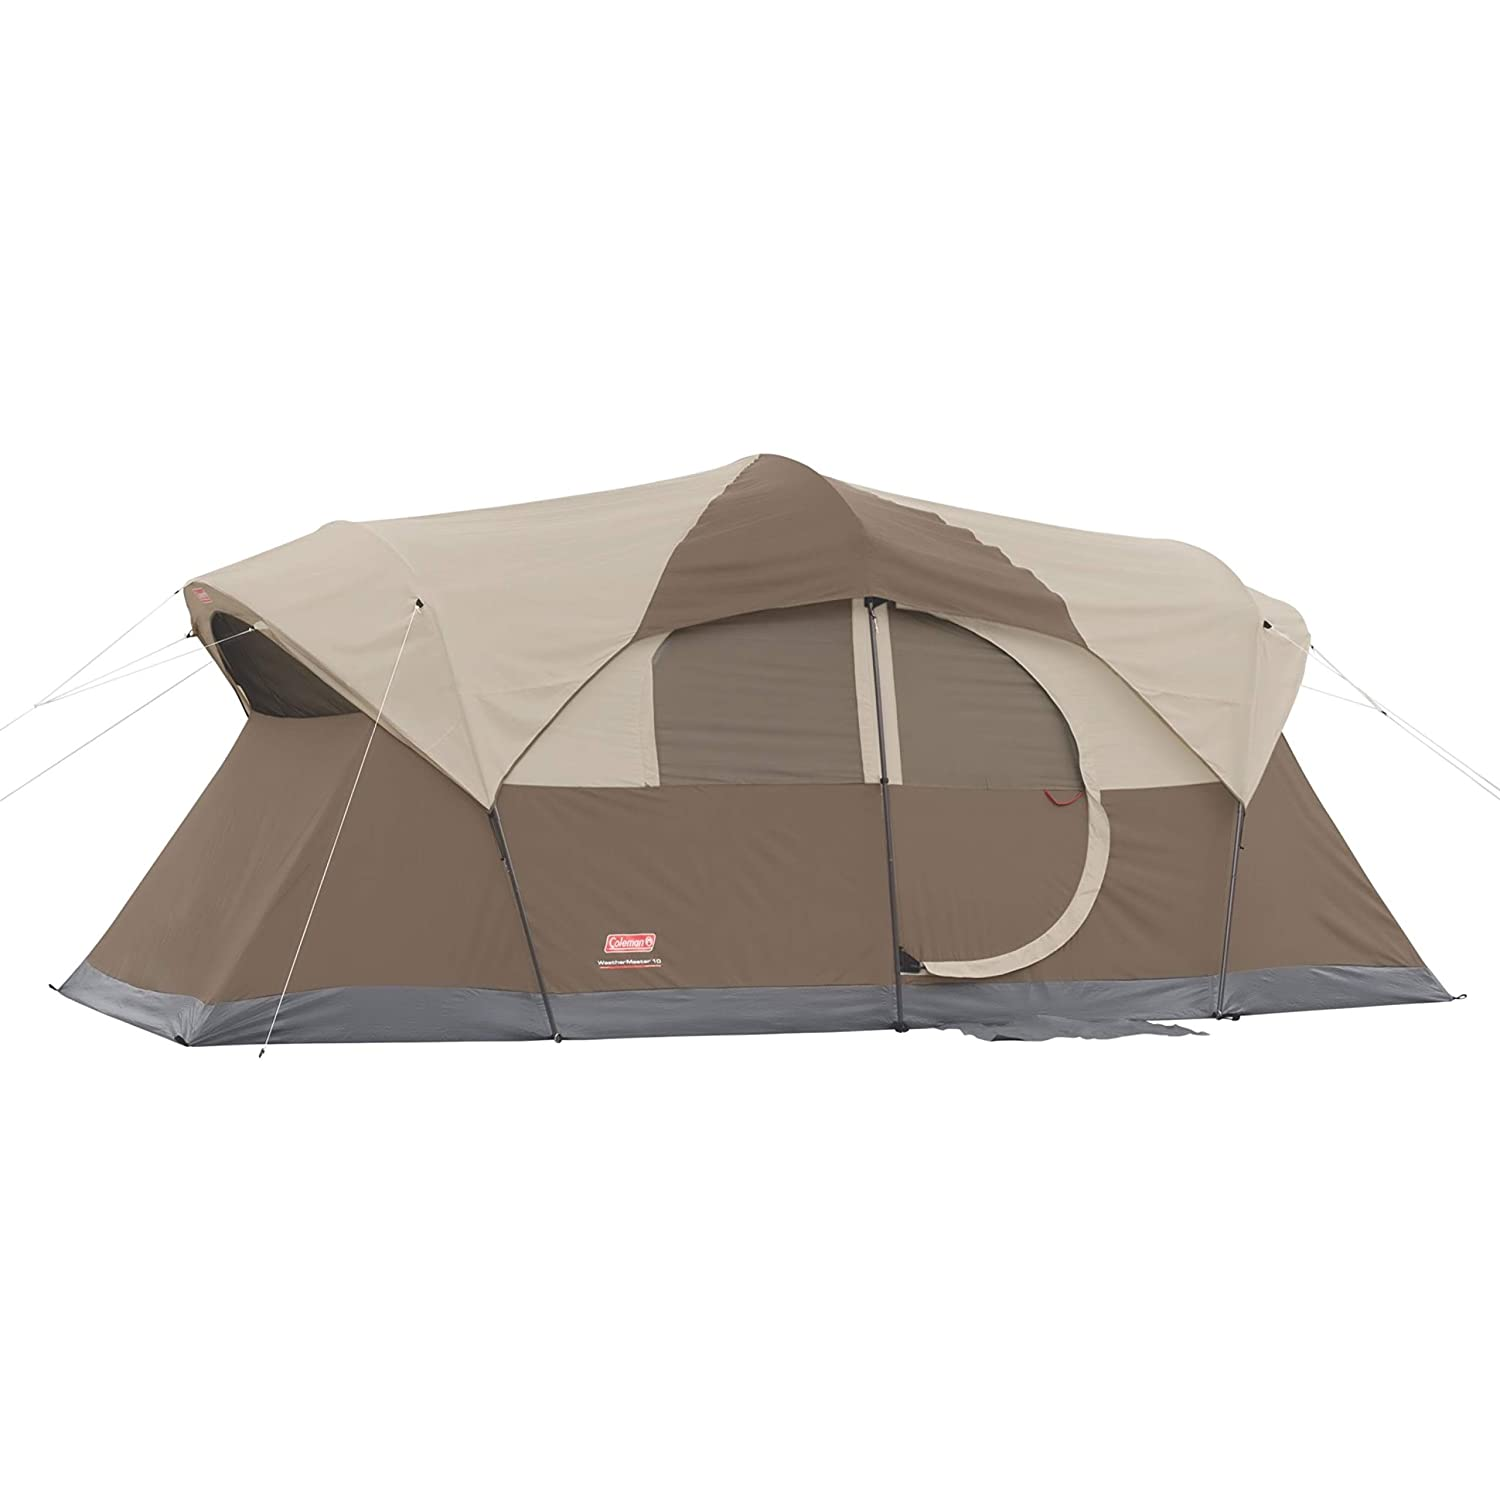 NEW Coleman In a popularity WeatherMaster 10-Person Tent Brown Outdoor